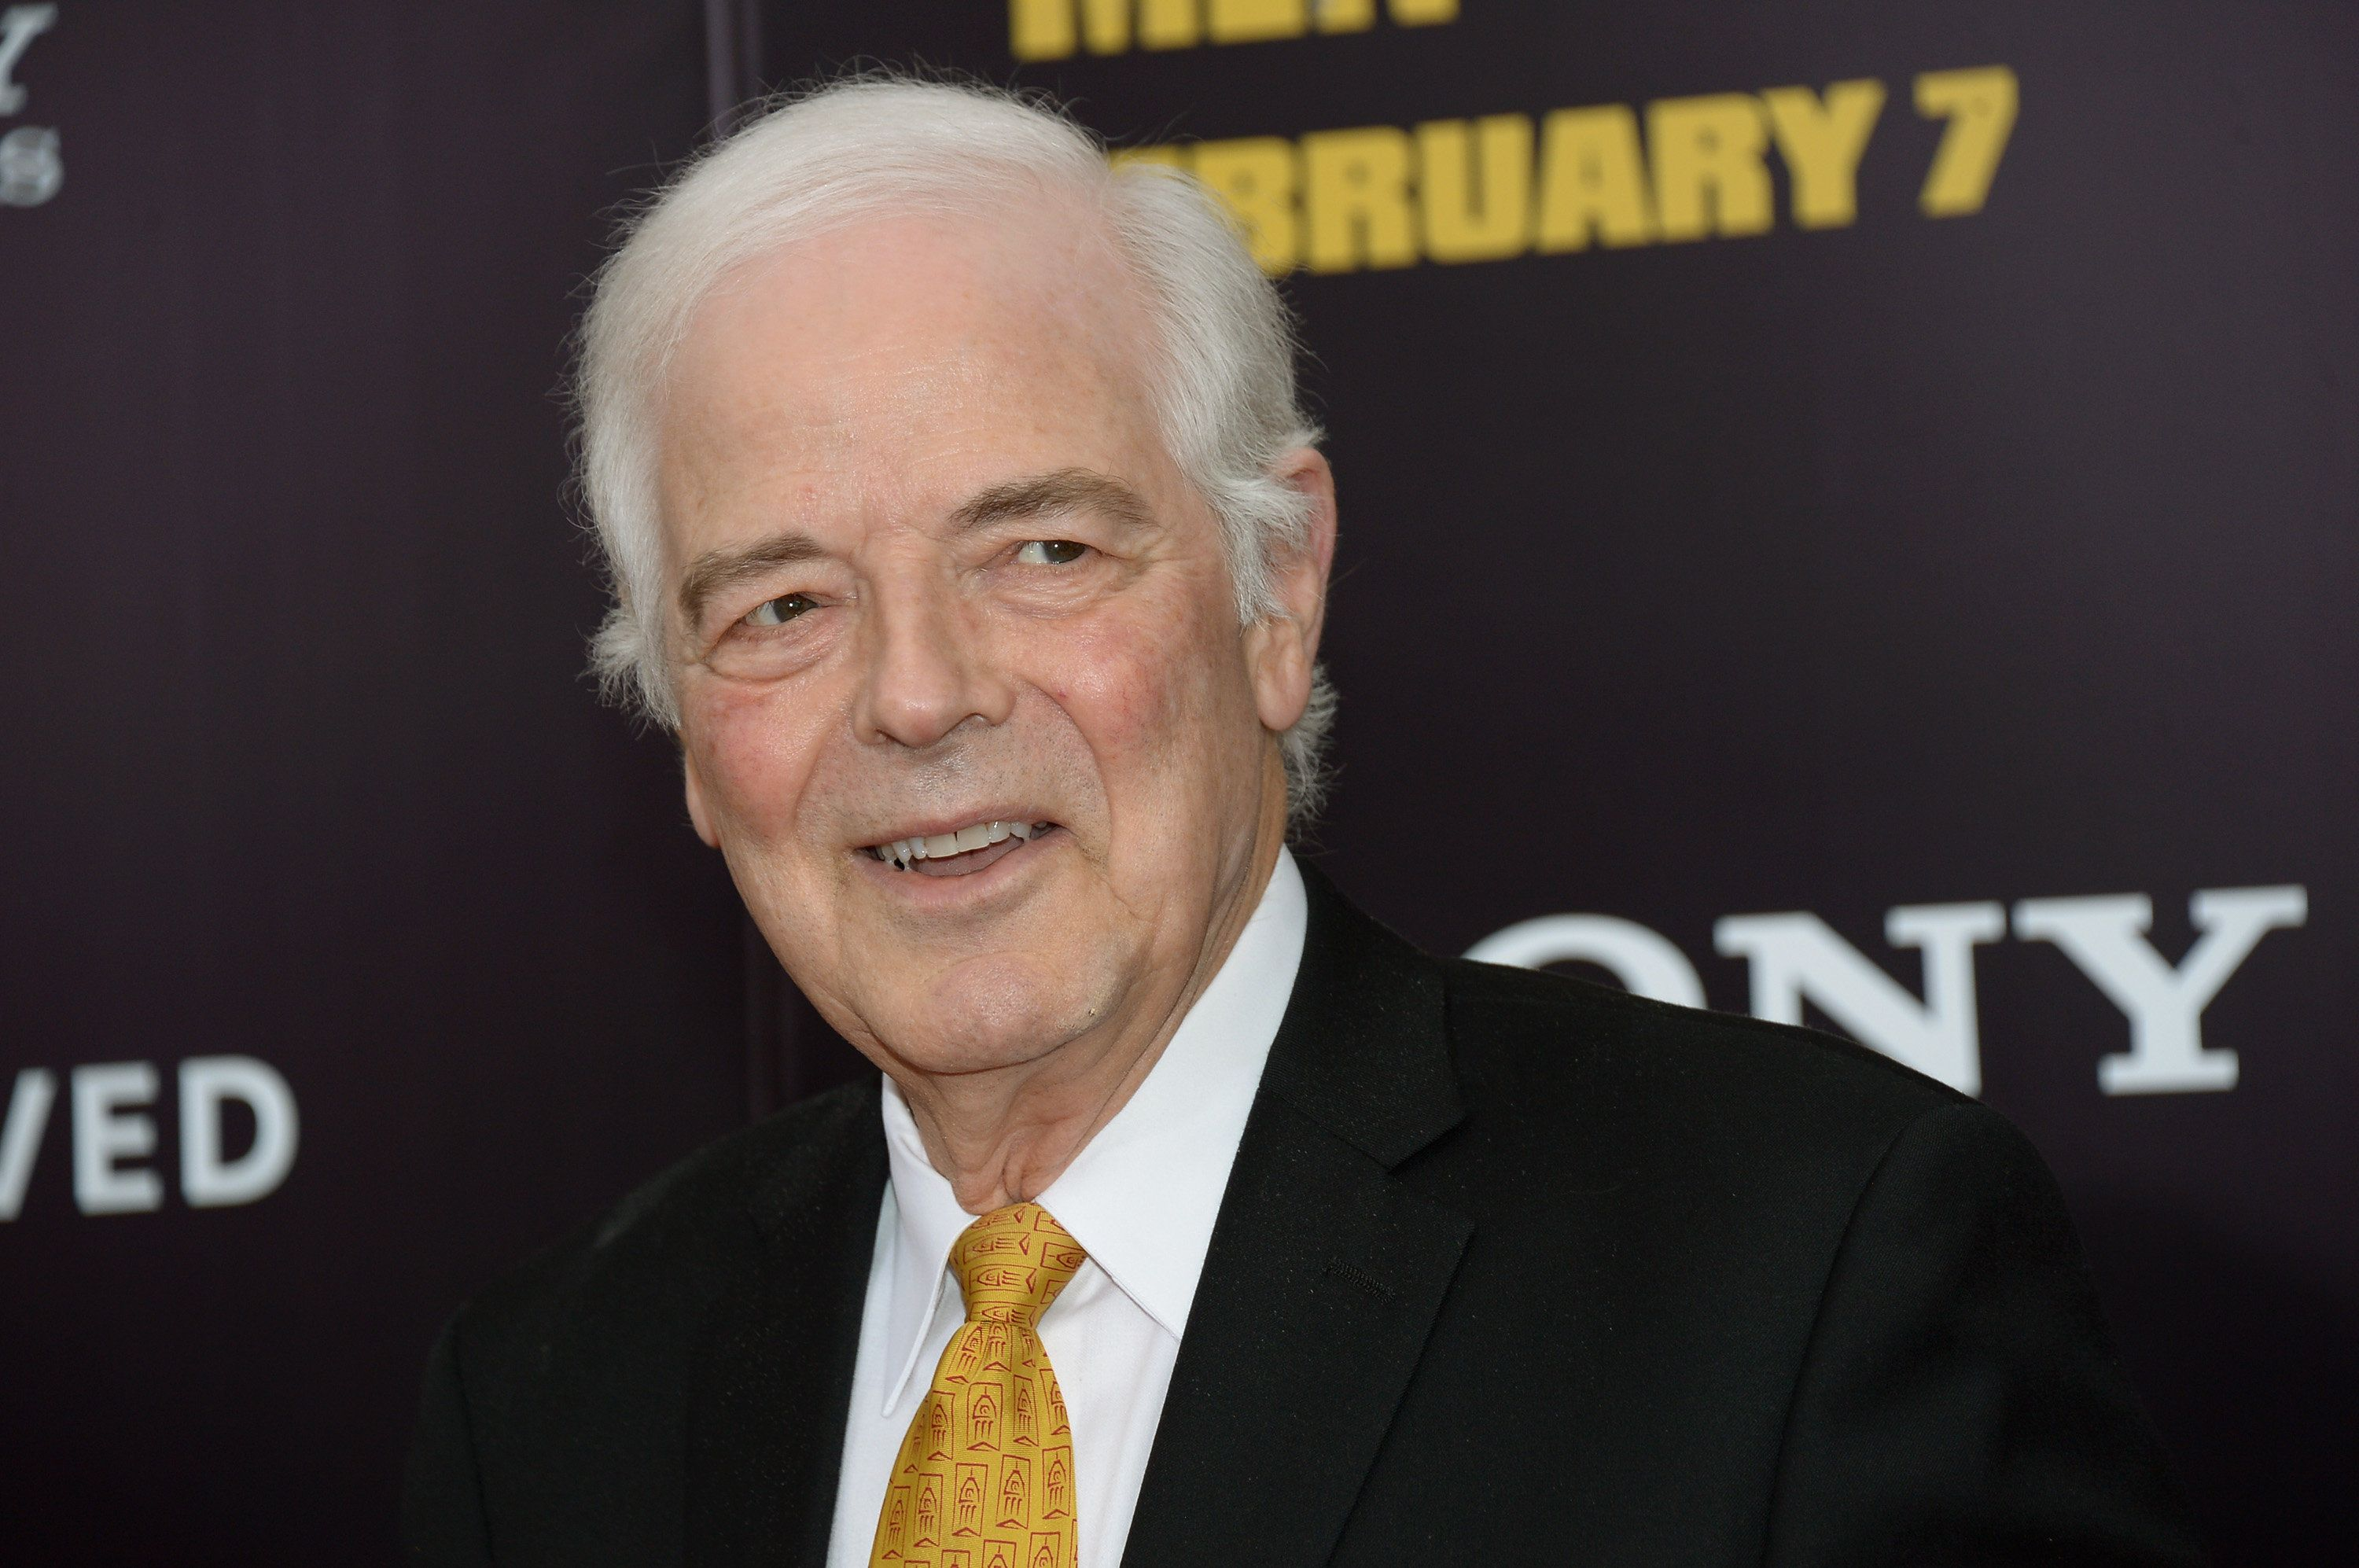 NEW YORK, NY - FEBRUARY 04:  Journalist Nick Clooney attends 'The Monuments Men' premiere at Ziegfeld Theater on February 4, 2014 in New York City, New York.  (Photo by Michael Loccisano/Getty Images)